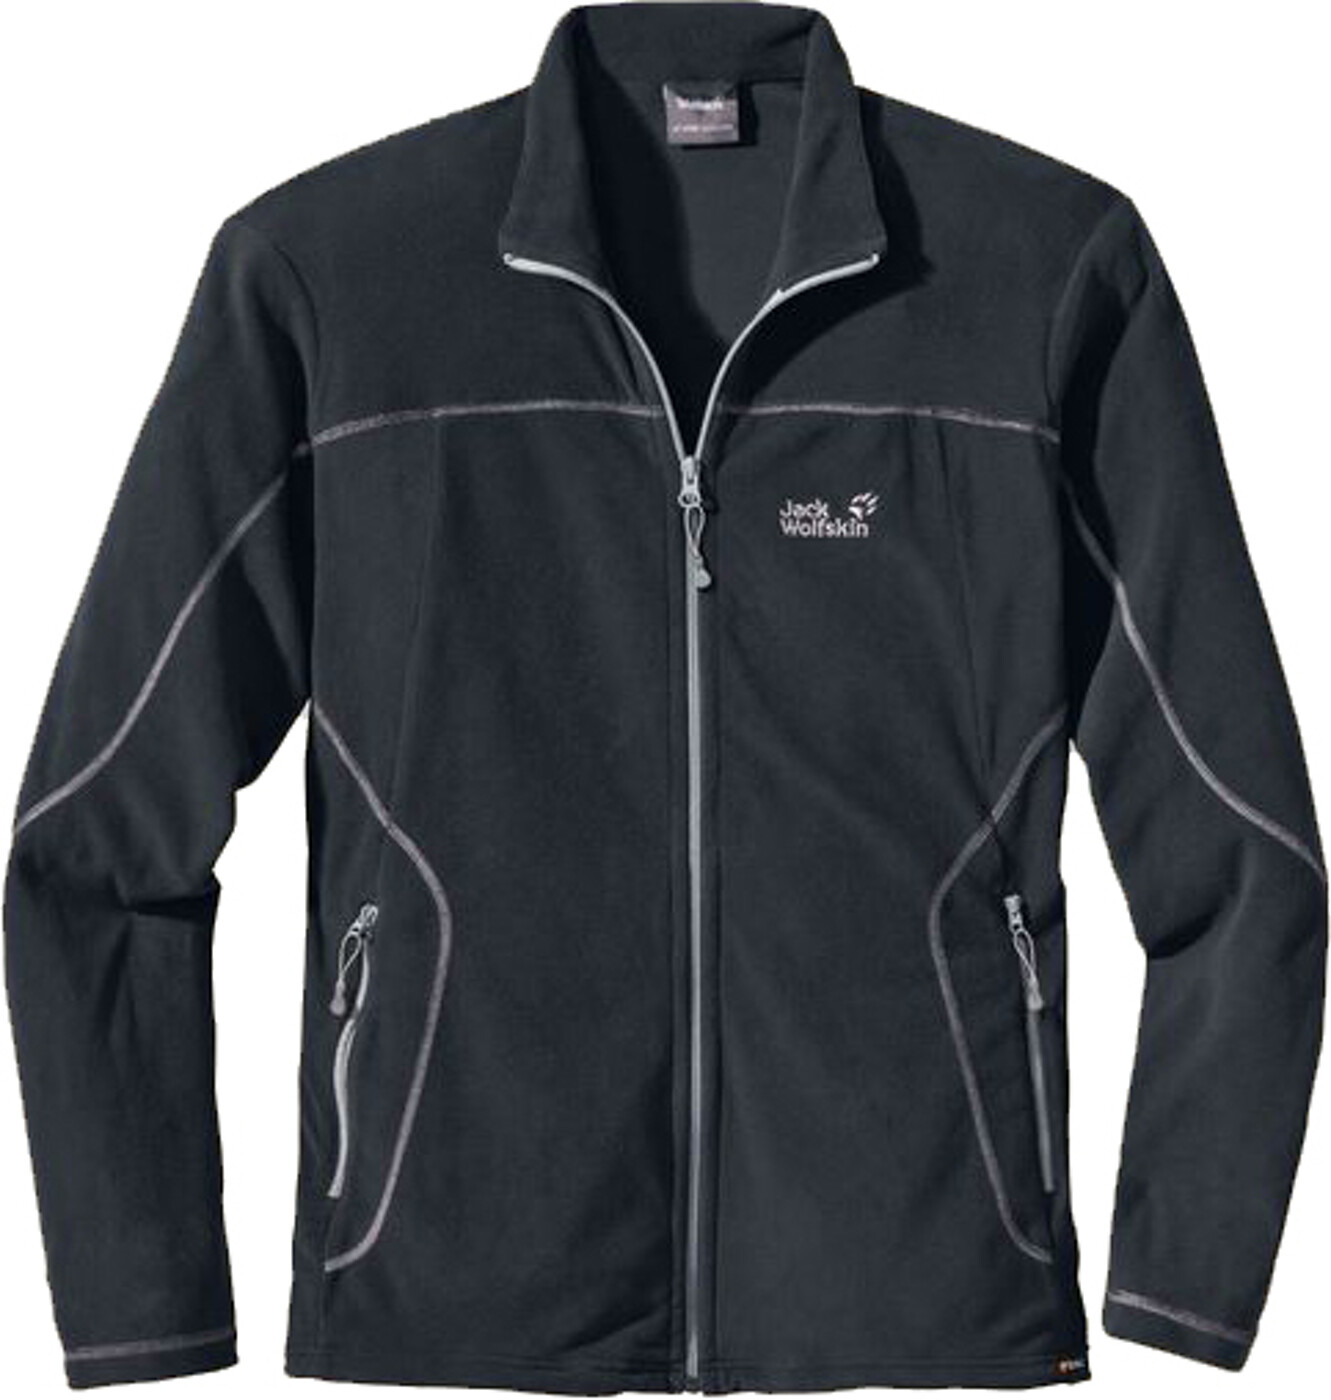 JACK-WOLFSKIN PERFORMANCE JACKET - Herren